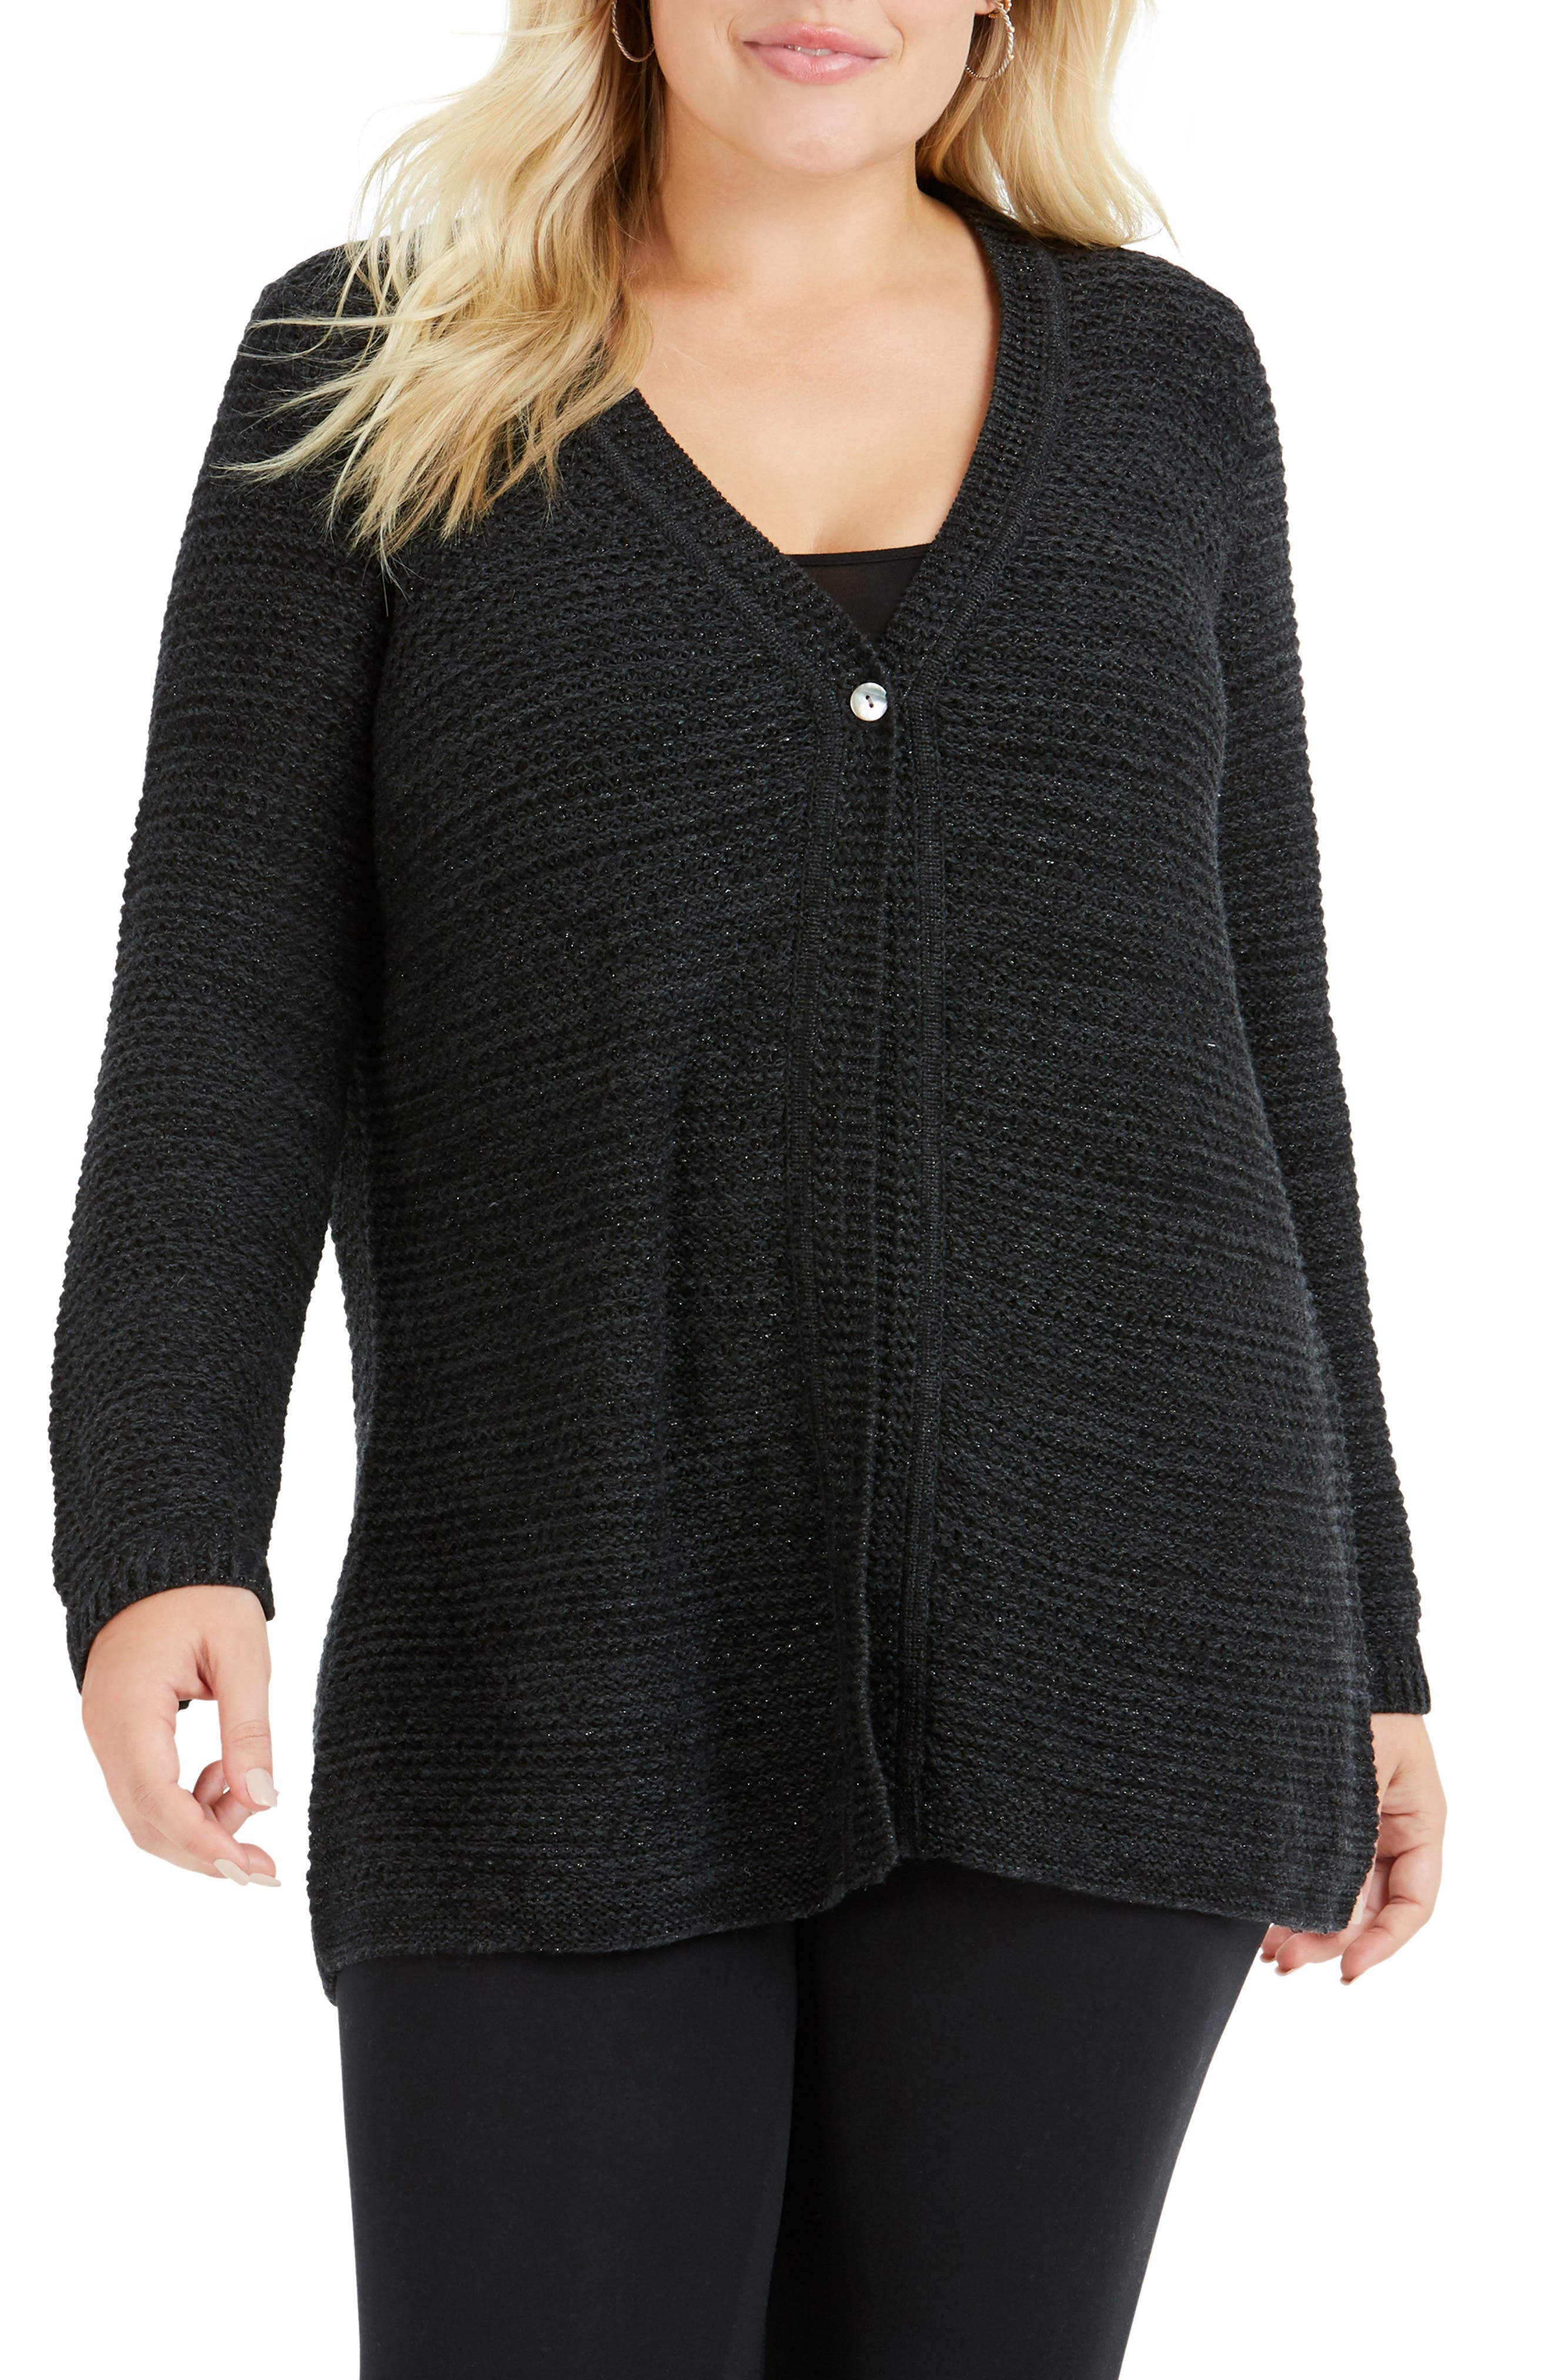 Marcelle Texture Stitch Cardigan,                             Main thumbnail 1, color,                             CHARCOAL